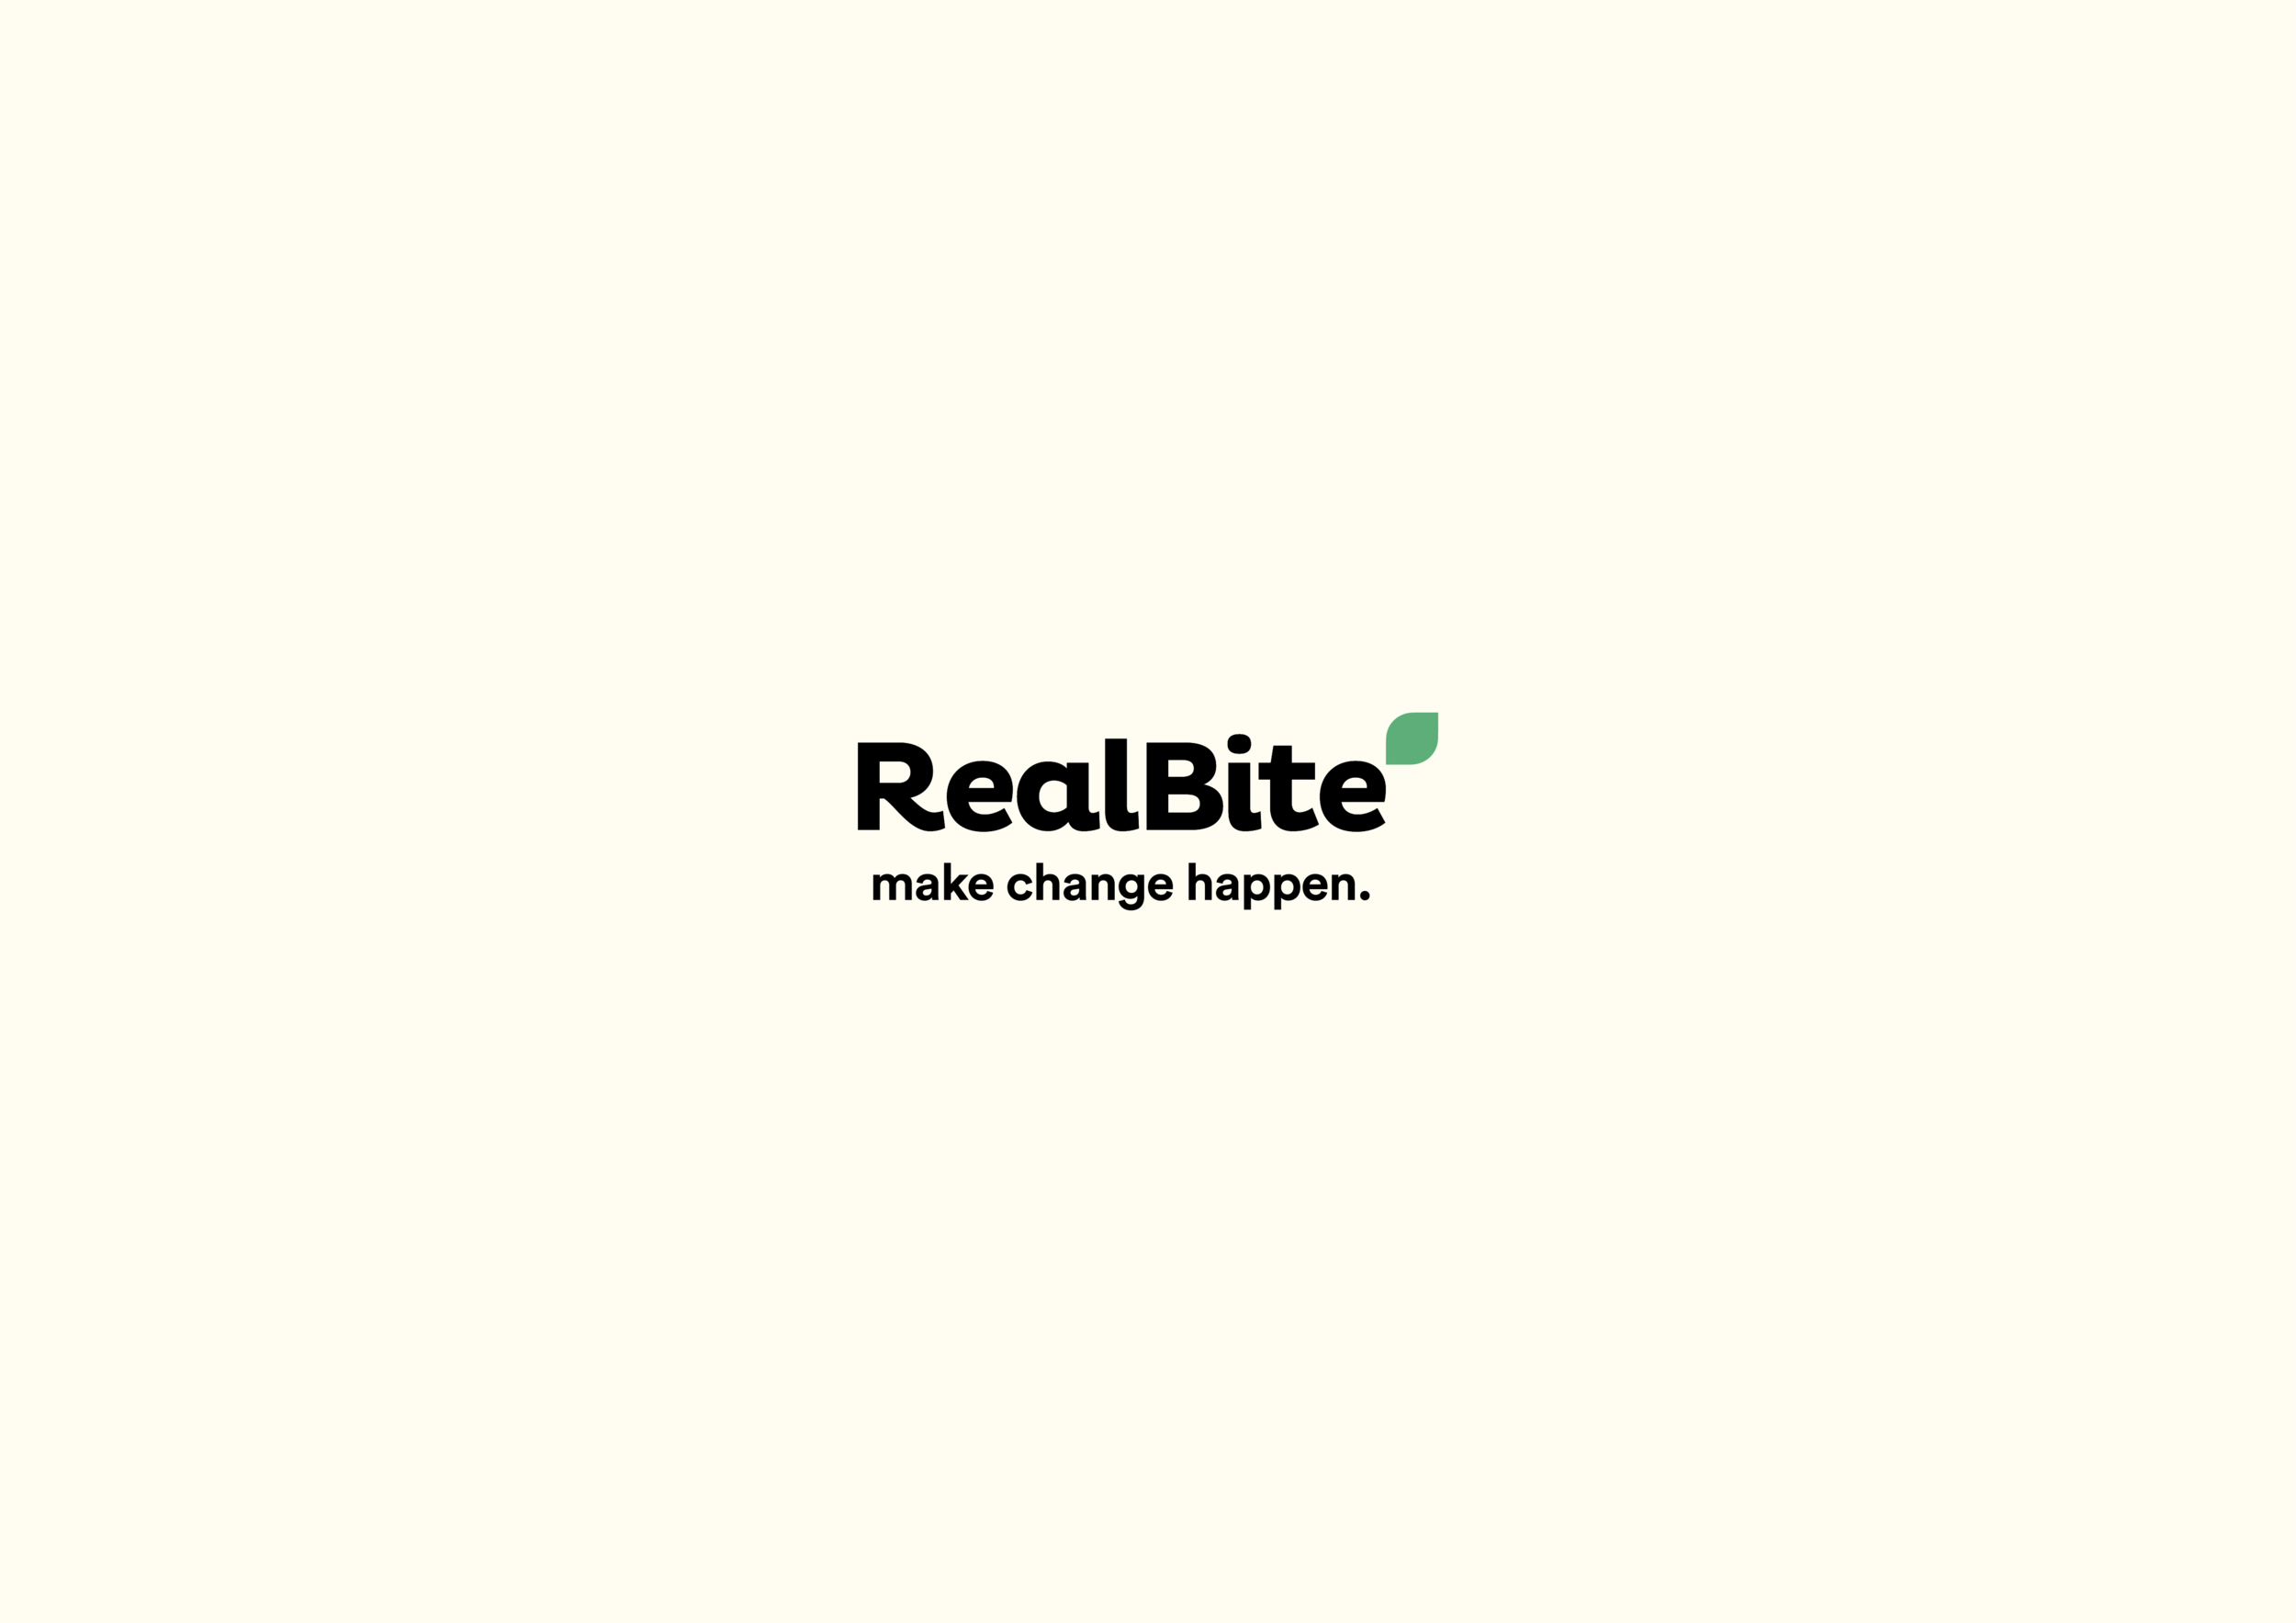 Realbite branding and packaging 3-.png